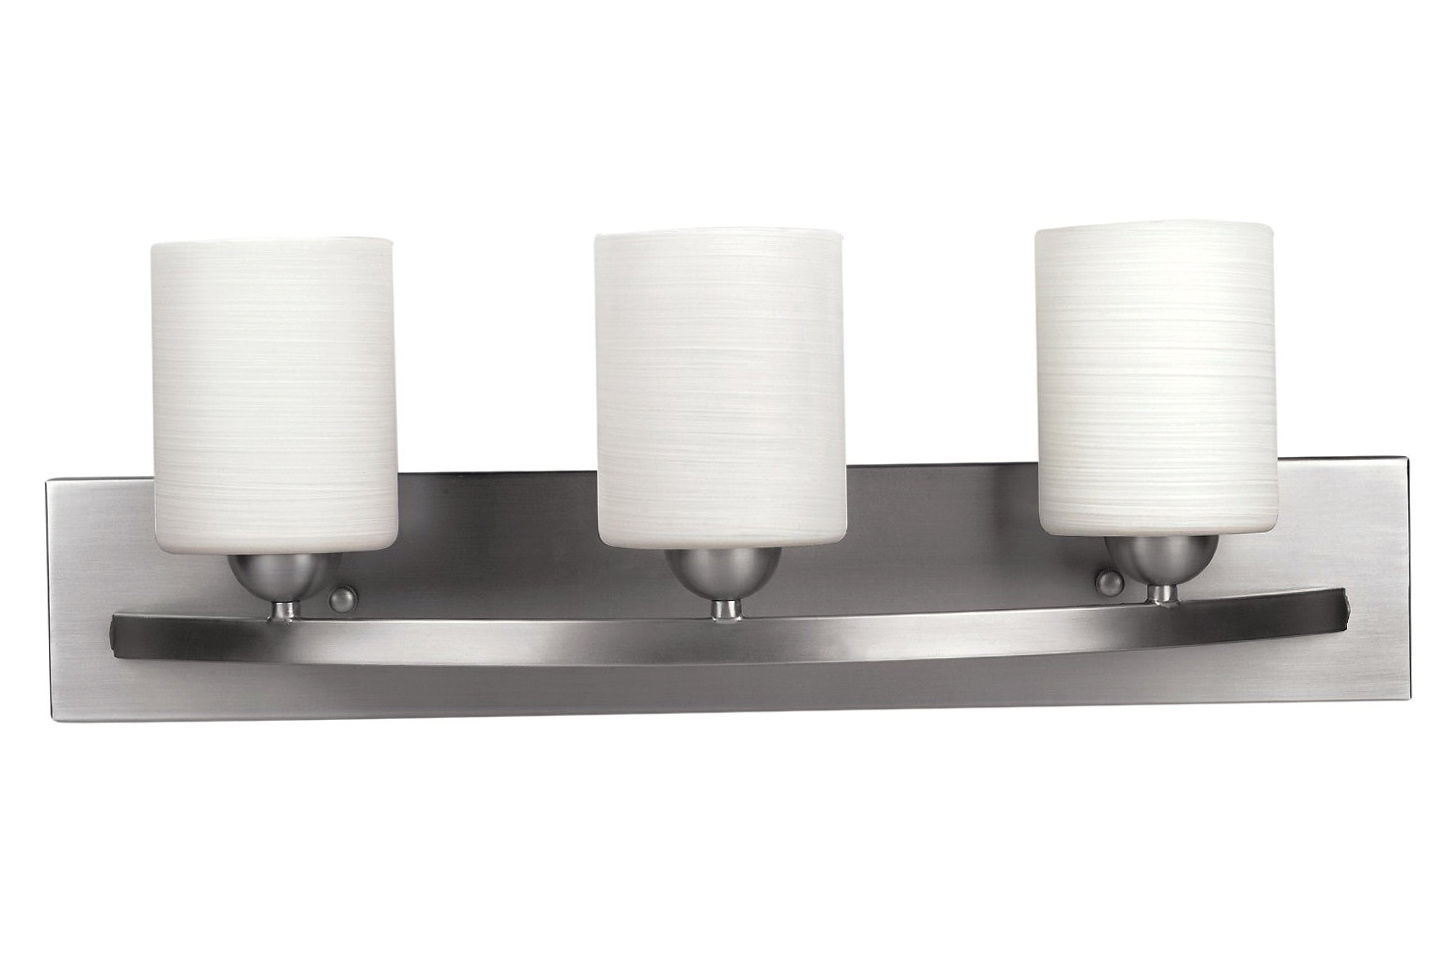 Contemporary Bathroom Light Fixture with Outlet Plug Pattern ...